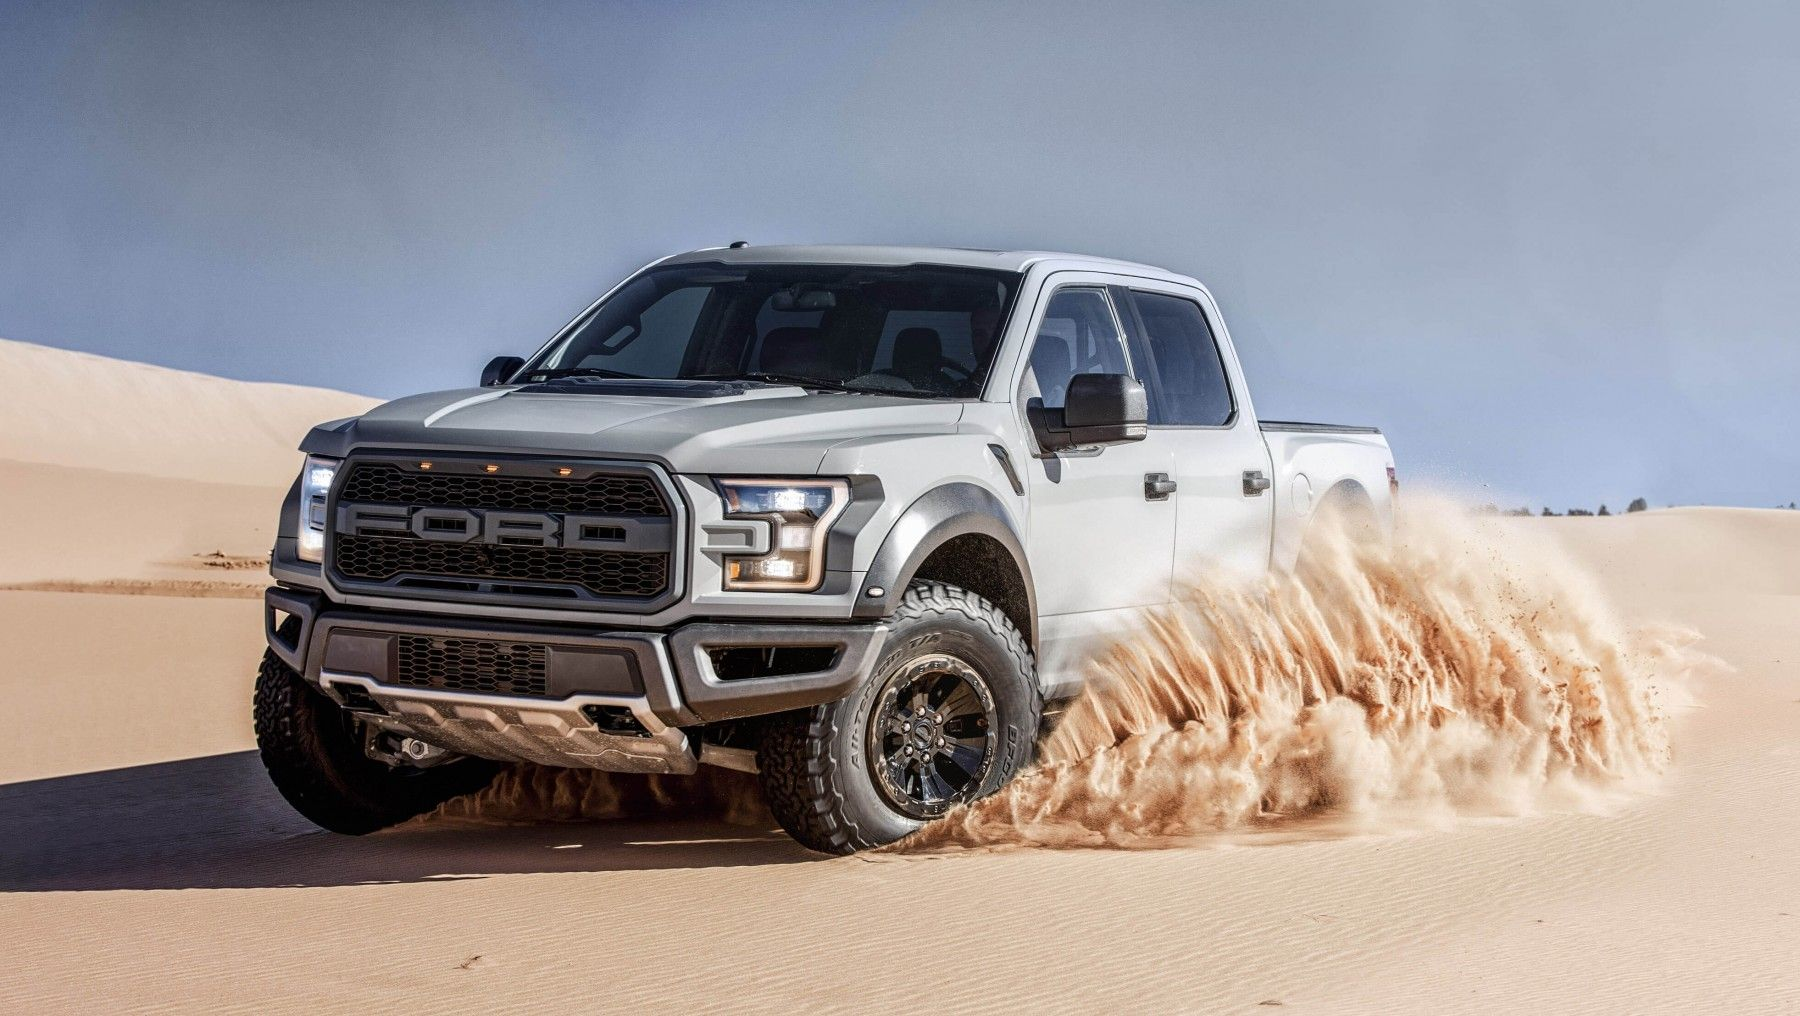 The 2017 ford raptor is the ultimate off road daily driver truck watch as